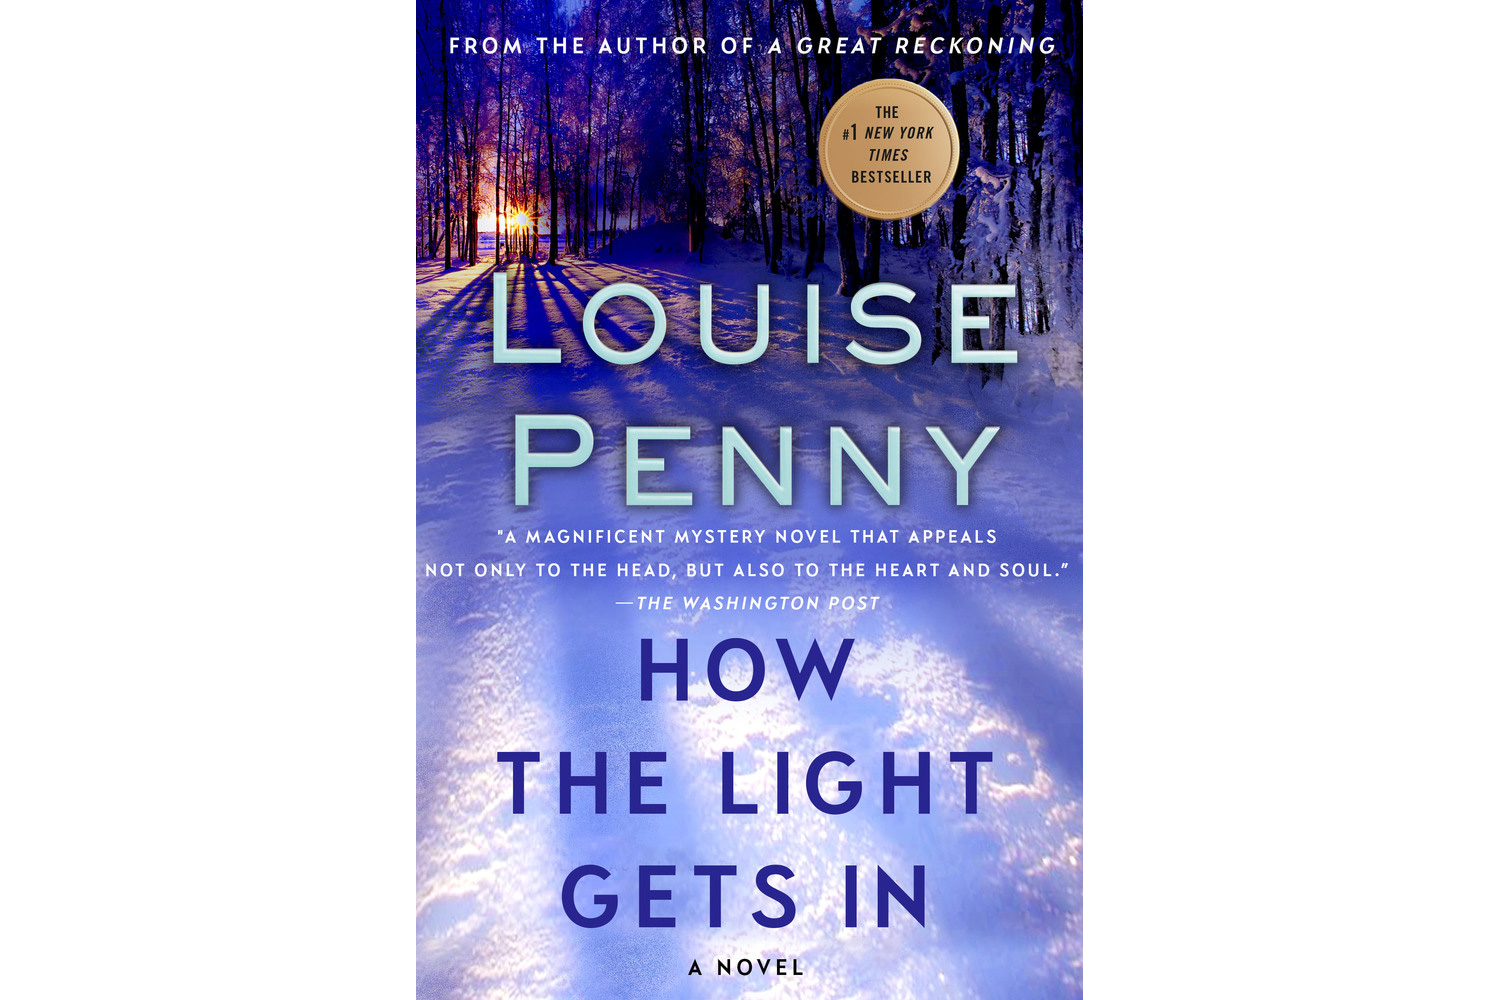 How the Light Gets In, by Louise Penny (FB BOOKS)